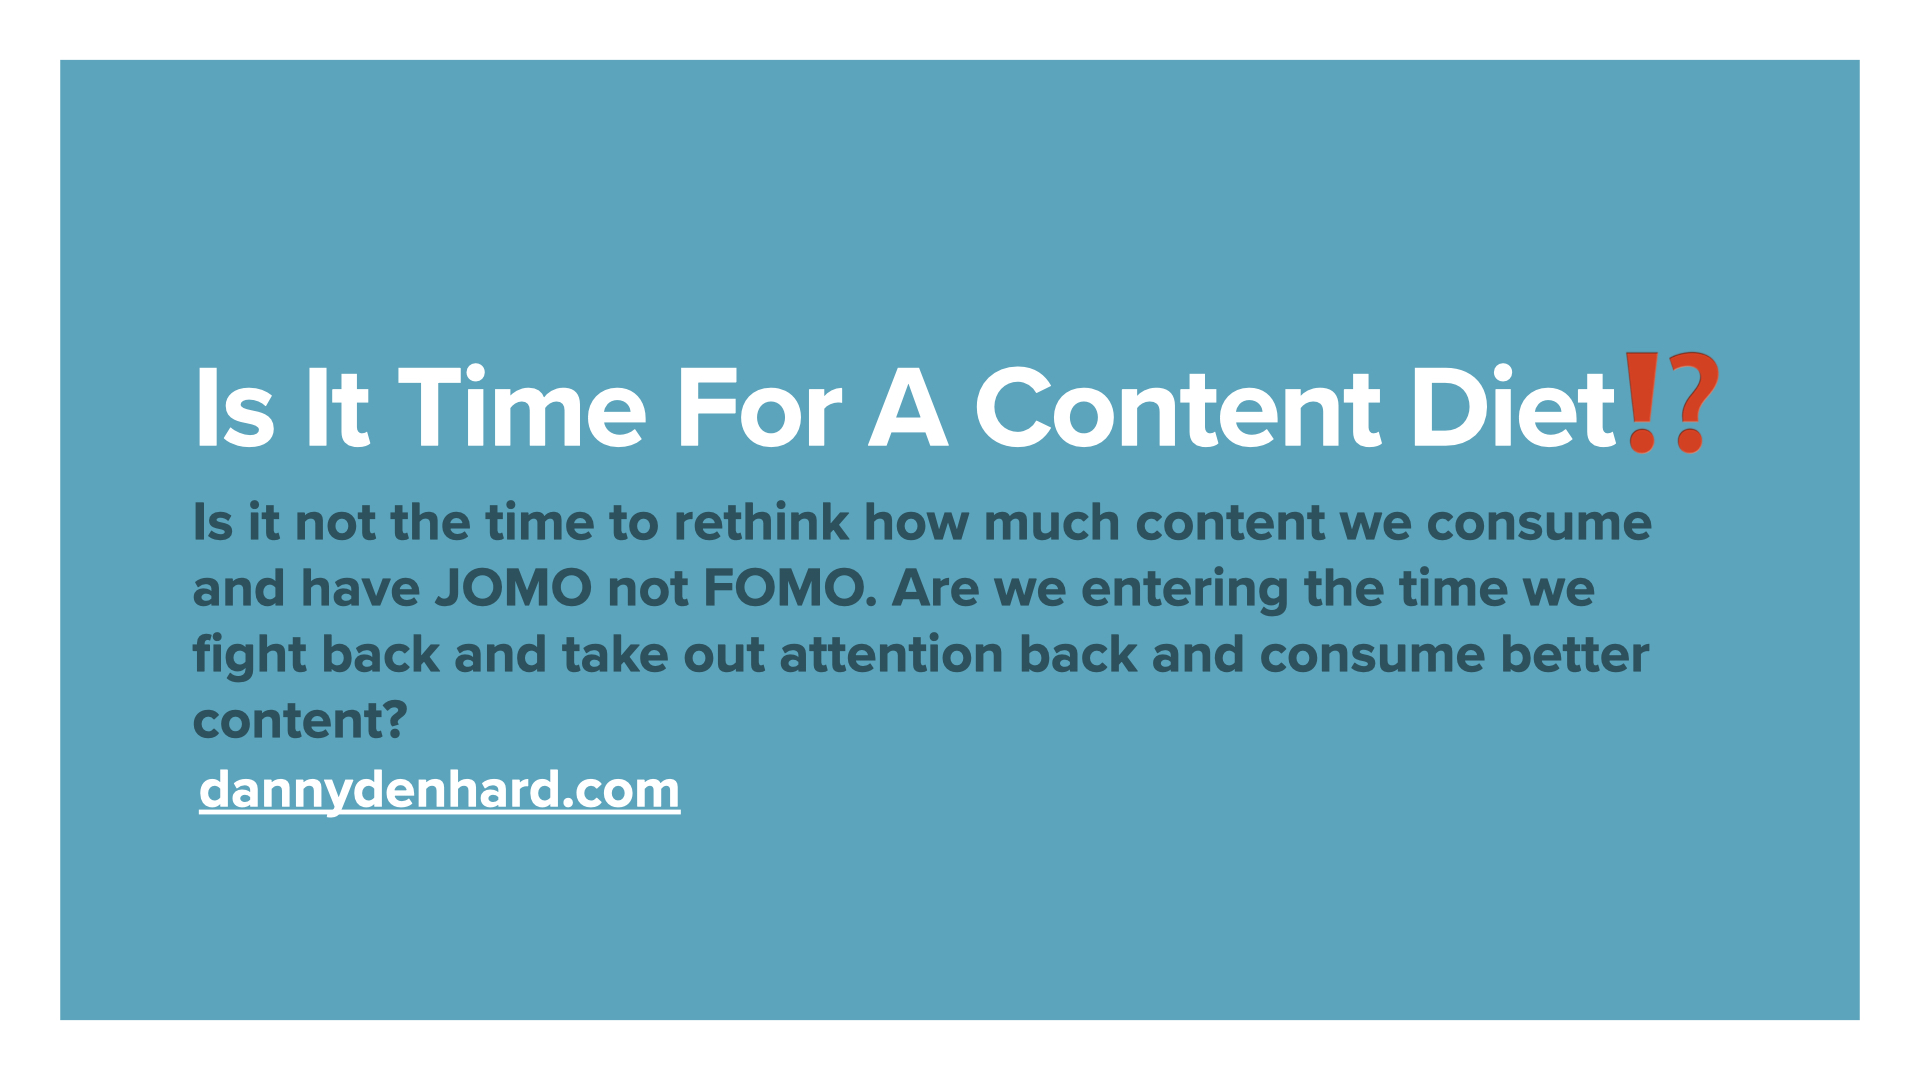 Time for a content diet?